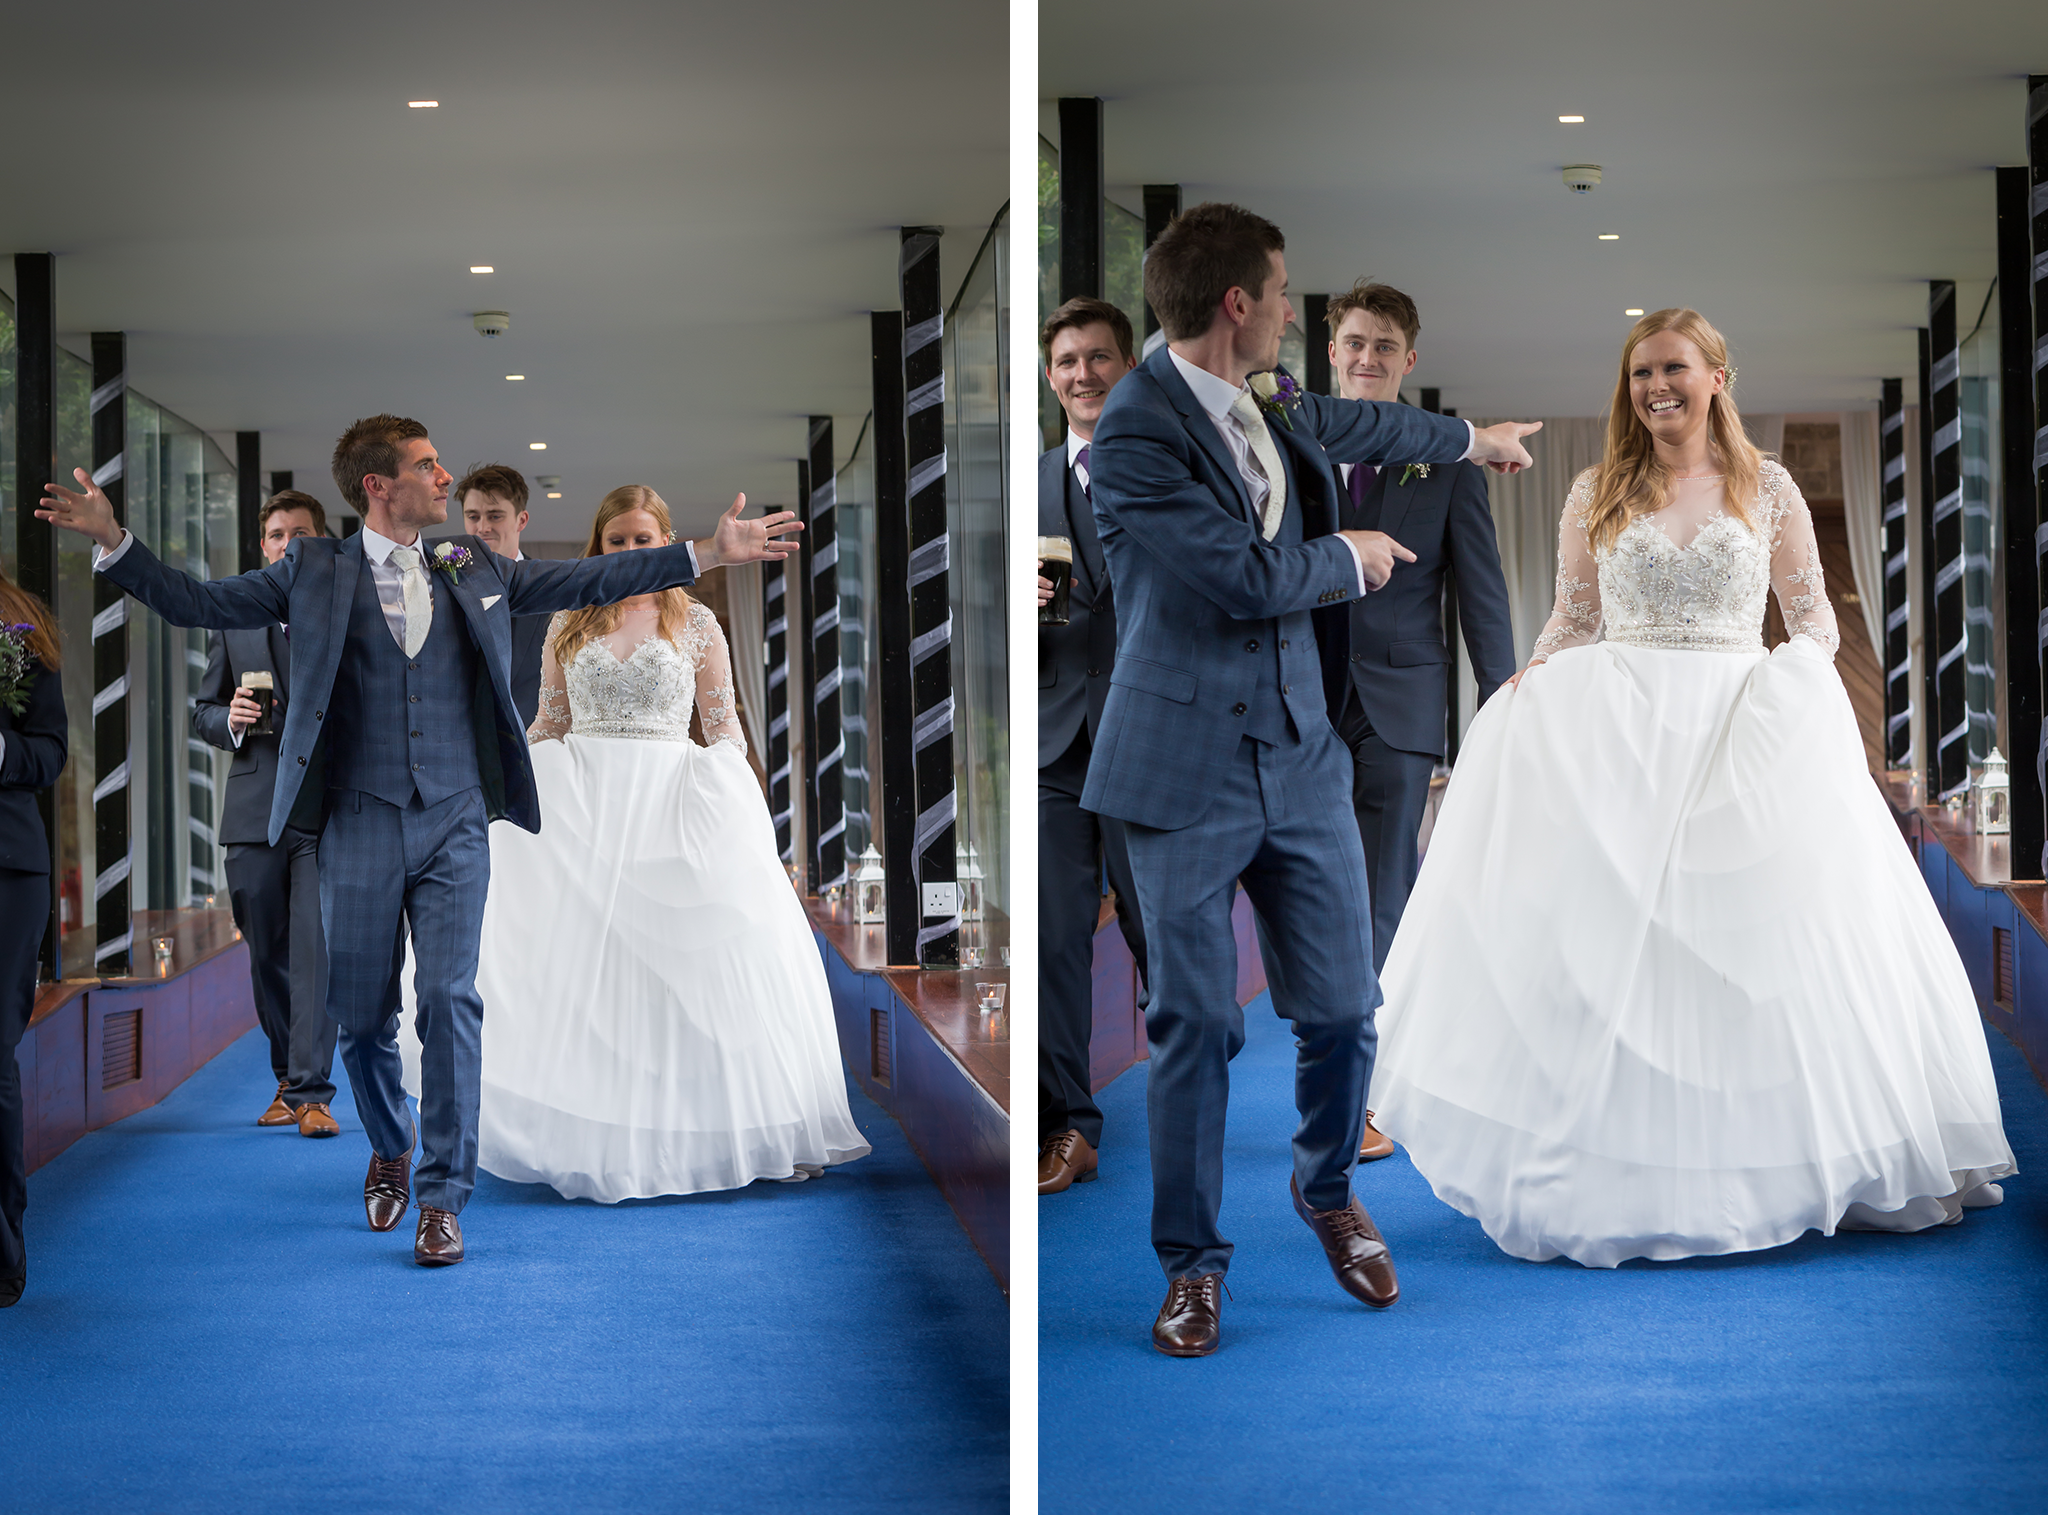 Fun wedding photography Galway Roscommon